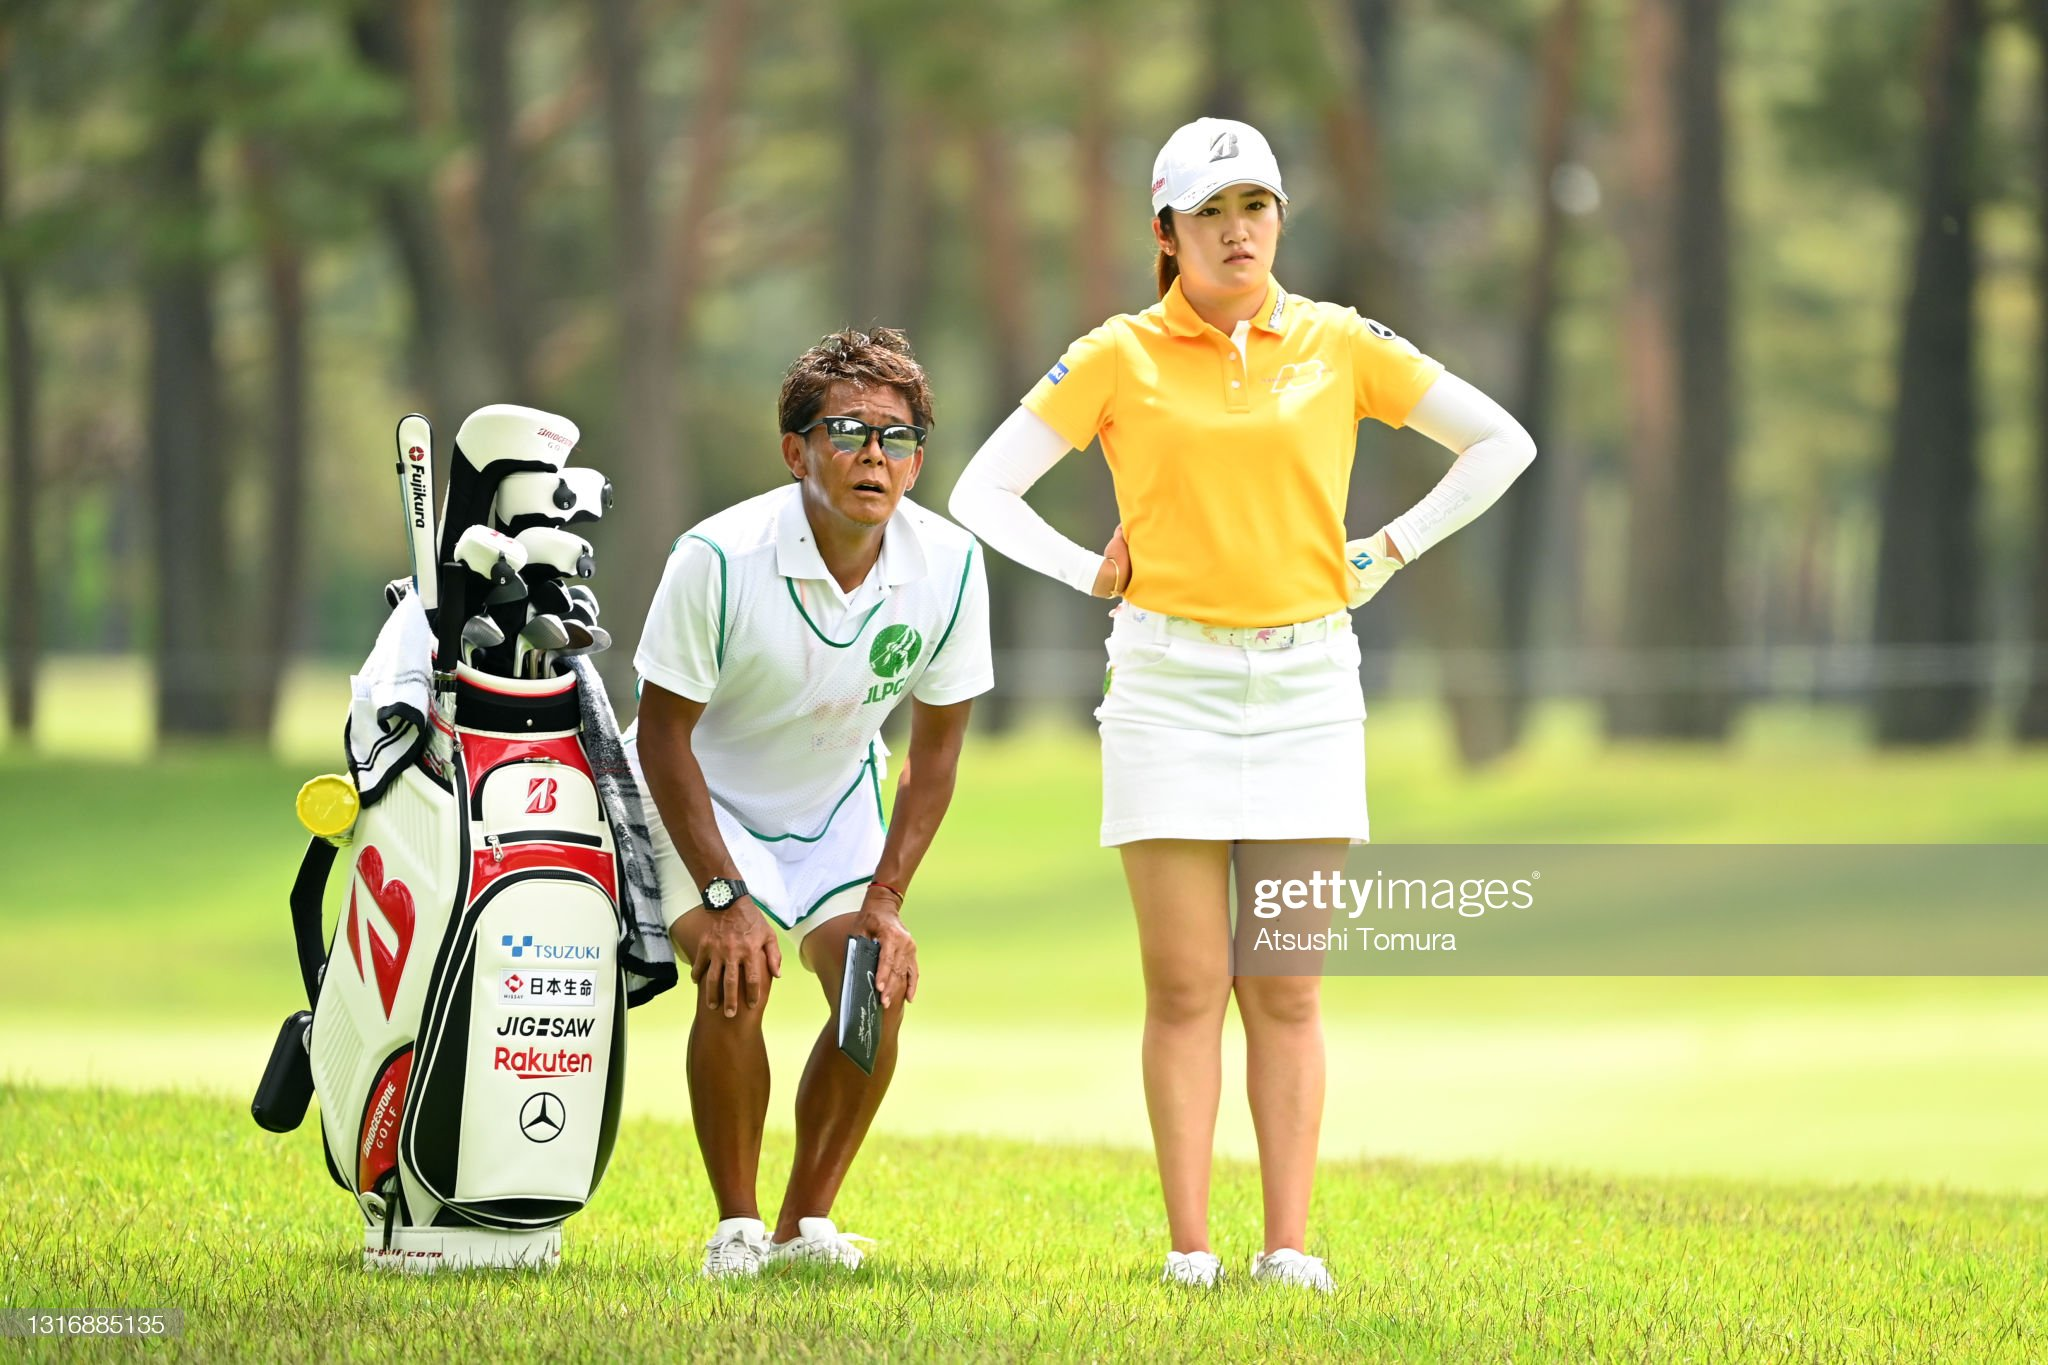 https://media.gettyimages.com/photos/mone-inami-of-japan-is-seen-with-her-caddie-before-her-second-shot-on-picture-id1316885135?s=2048x2048